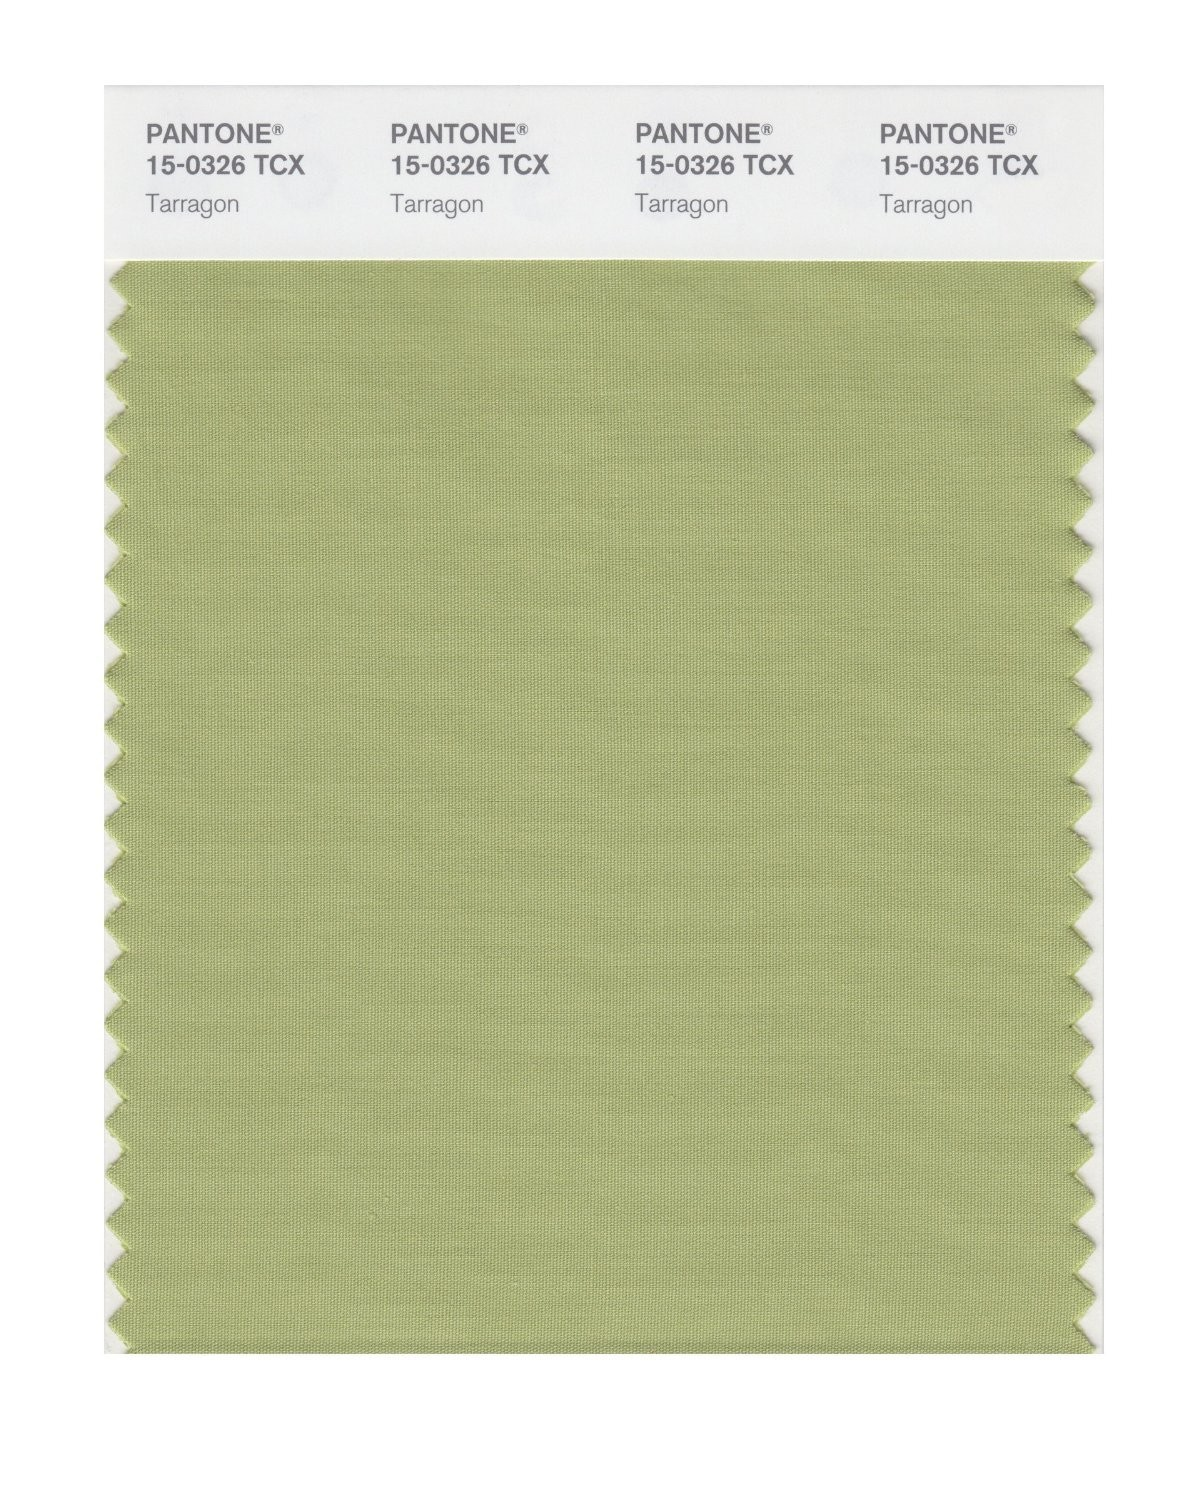 Pantone 15-0326 TCX Swatch Card Tarragon